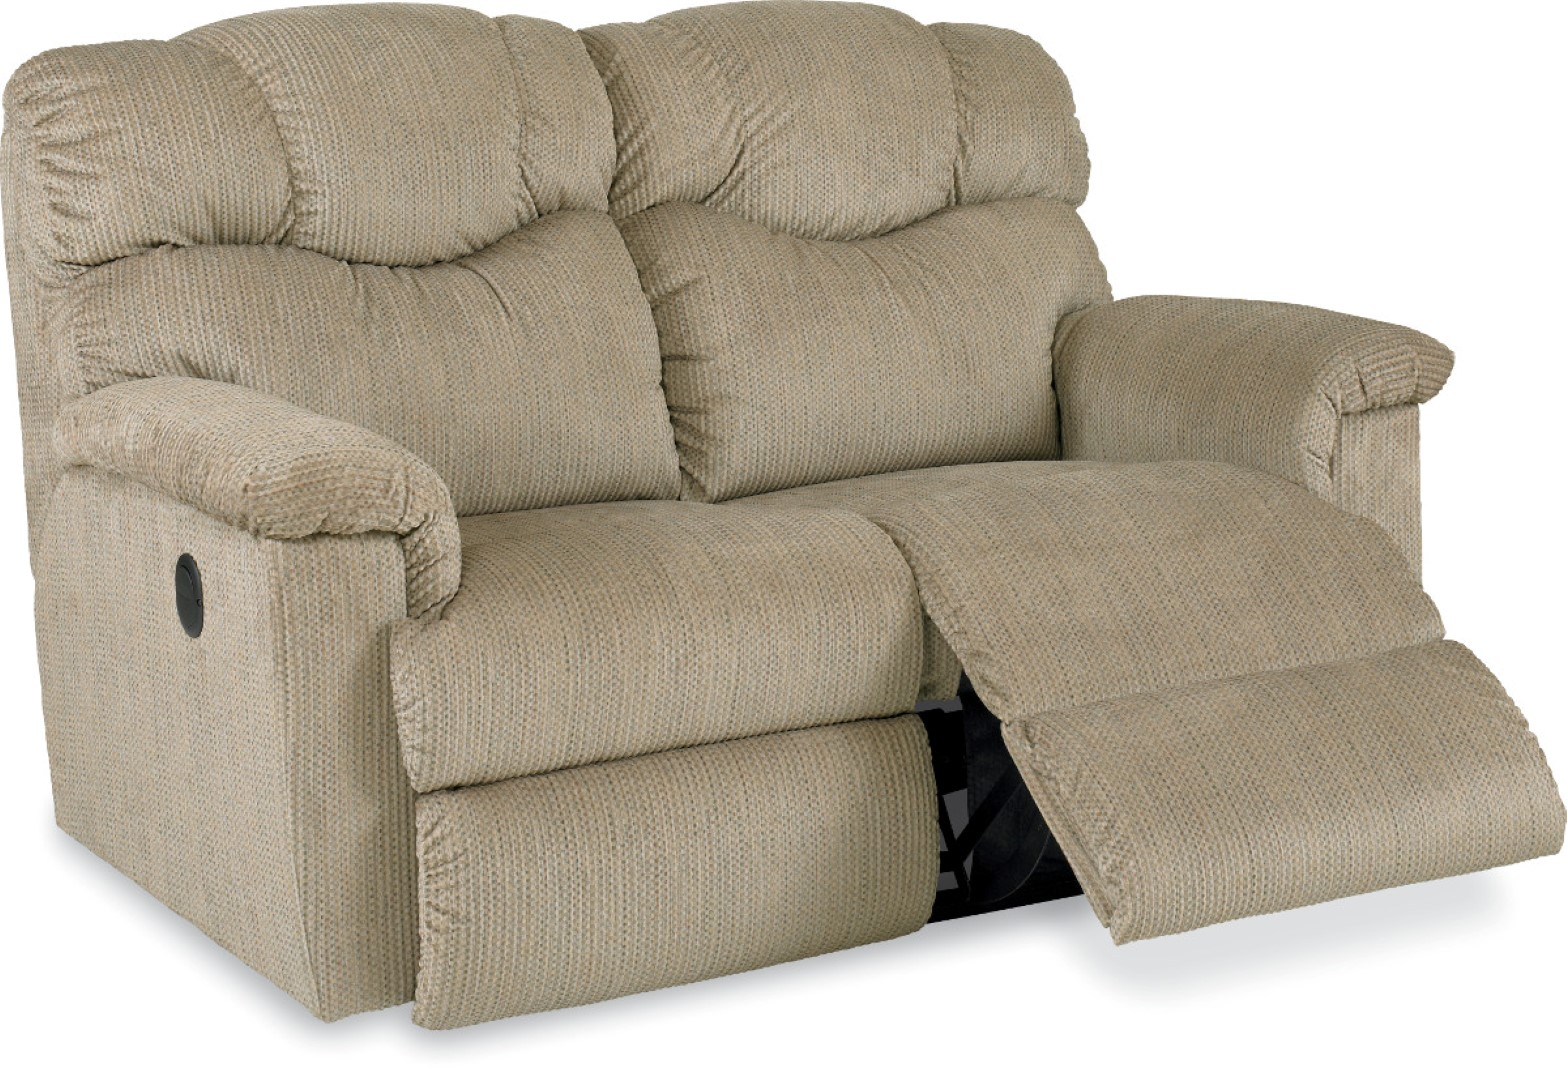 hight resolution of la z boy lancer reclining sofa town country furniture la z boy lancer reclining sofa